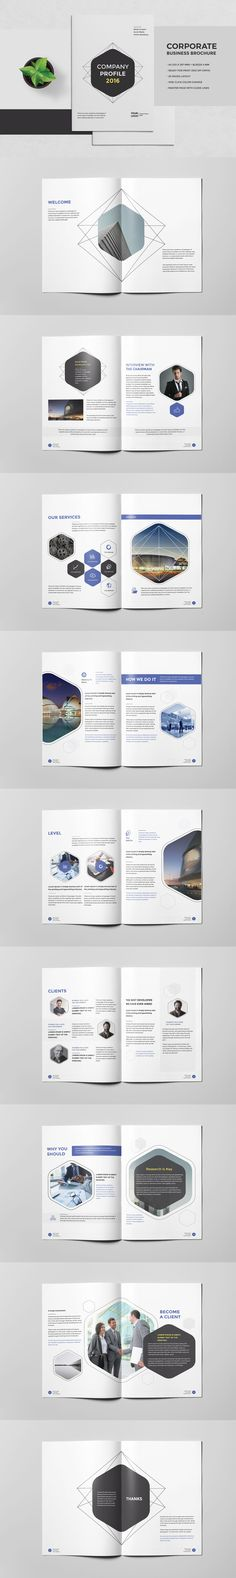 Corporate Business Brochure 20 Pages A4 Template InDesign INDD